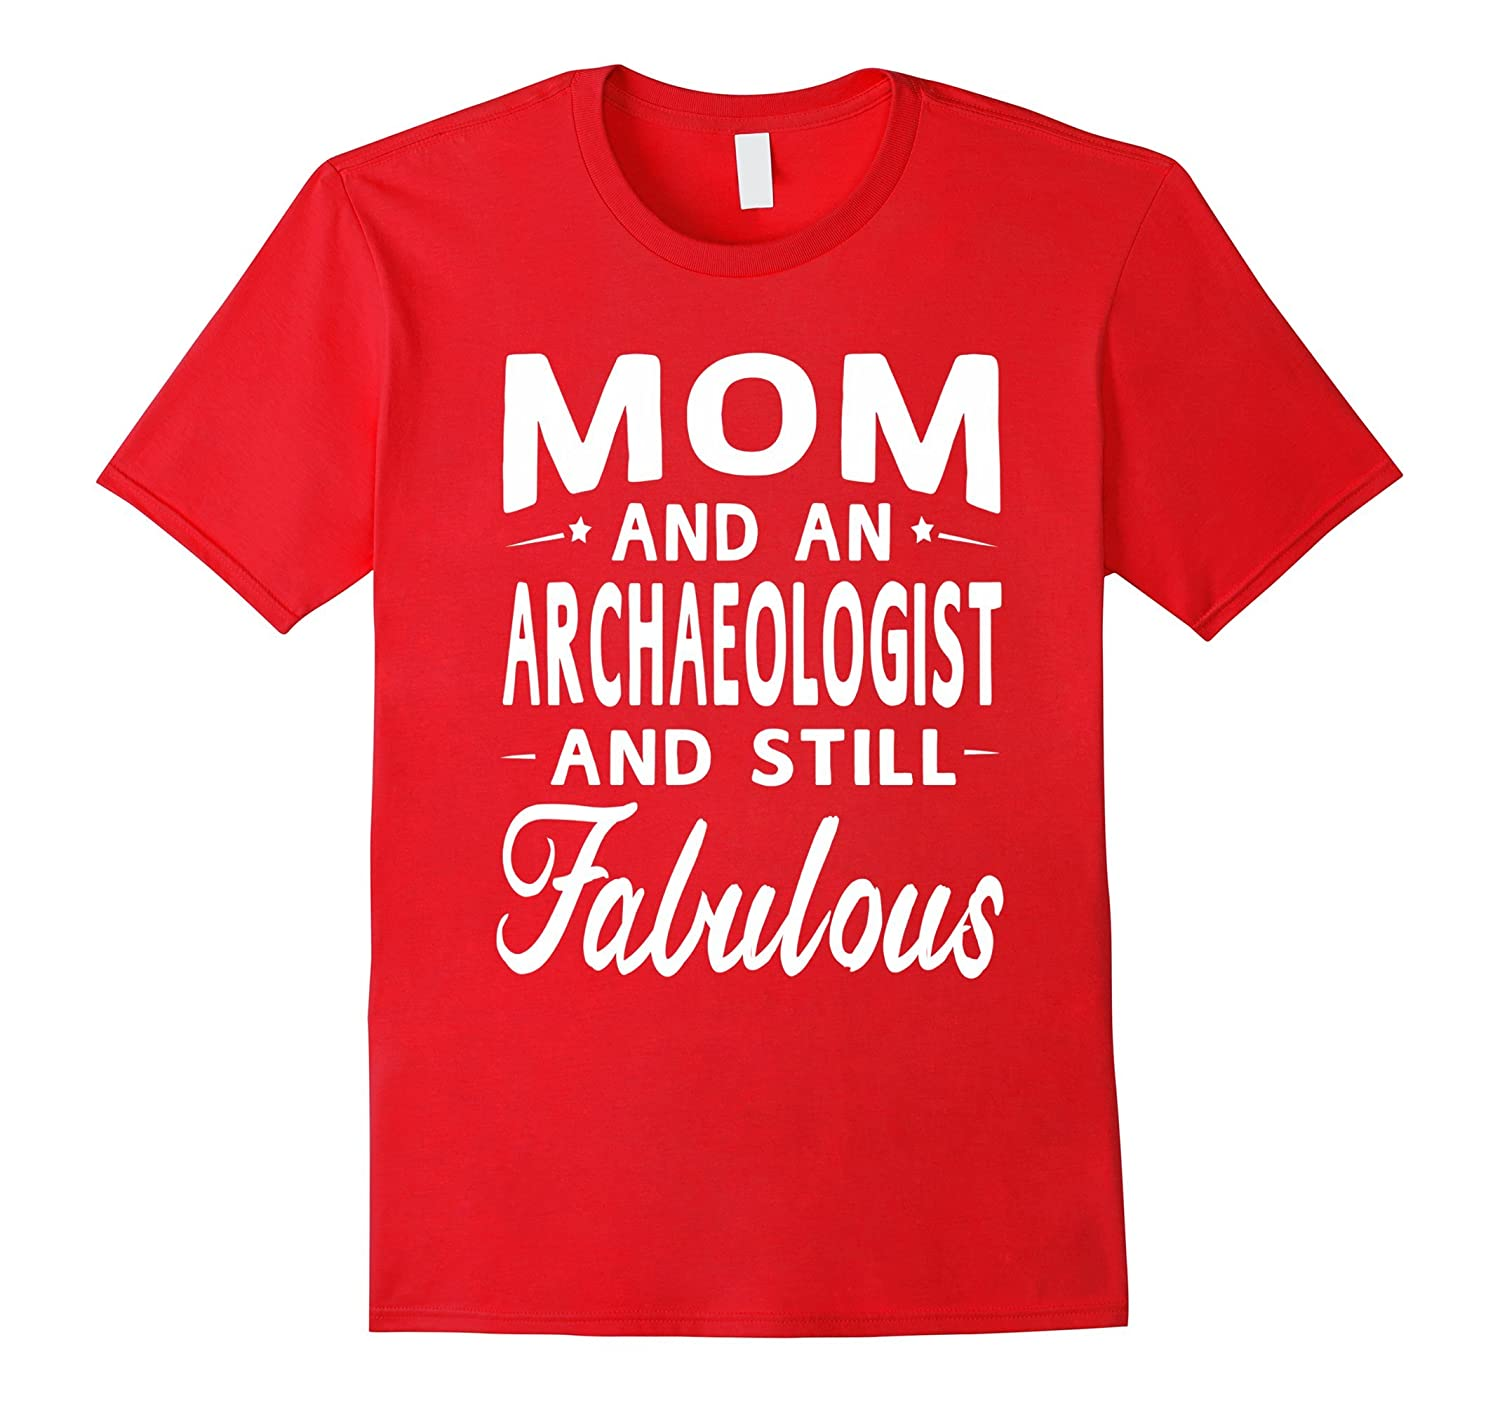 Mothers Day Gifts Women Fabulous Archaeologist Mom T-shirt-TJ